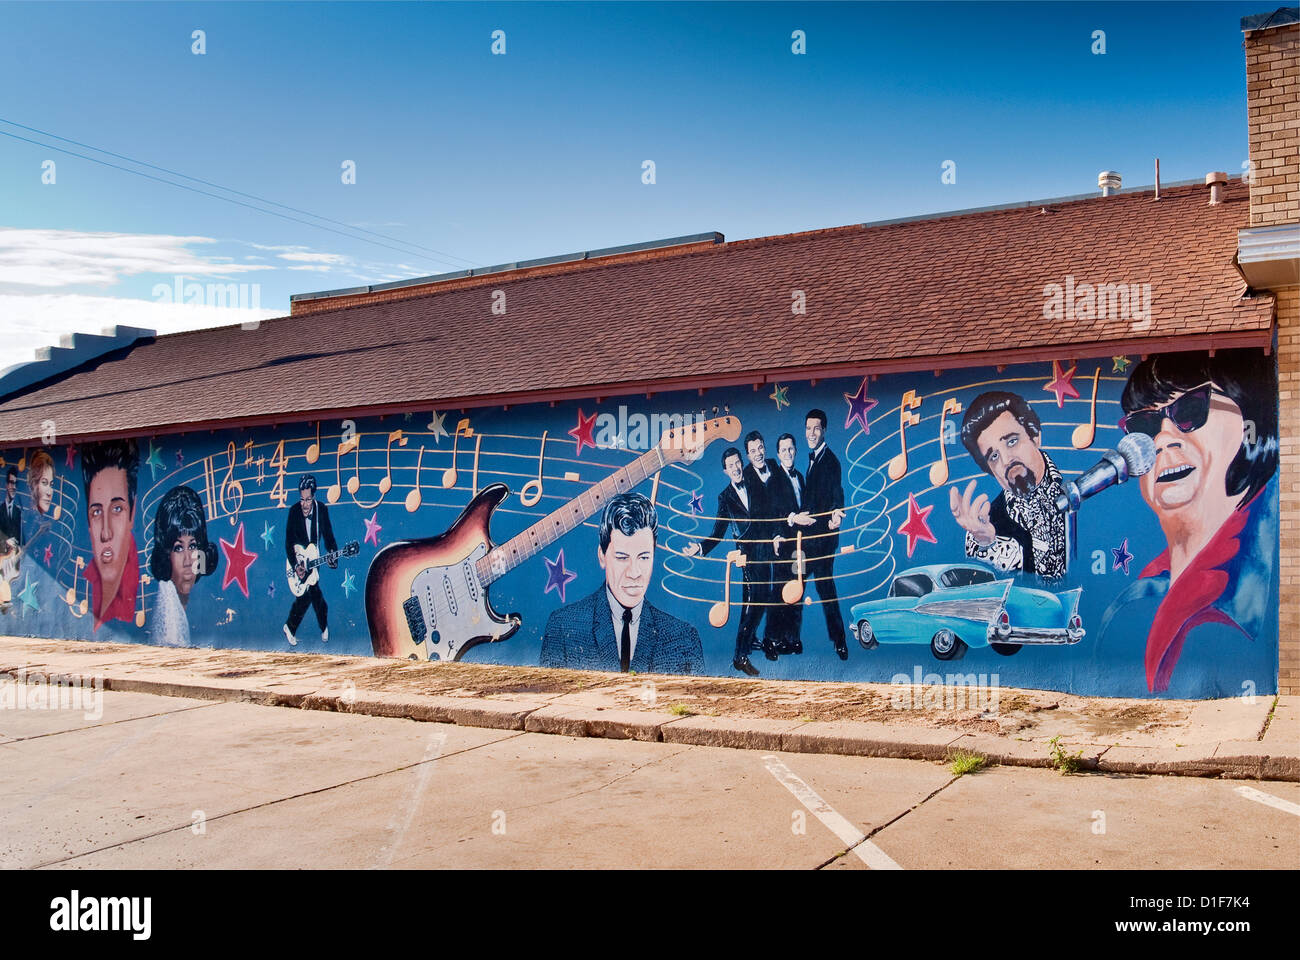 Elvis Presley, Buddy Holly, other 1950s rock'n'roll stars in mural in Clovis in Great Plains area of New - Stock Image